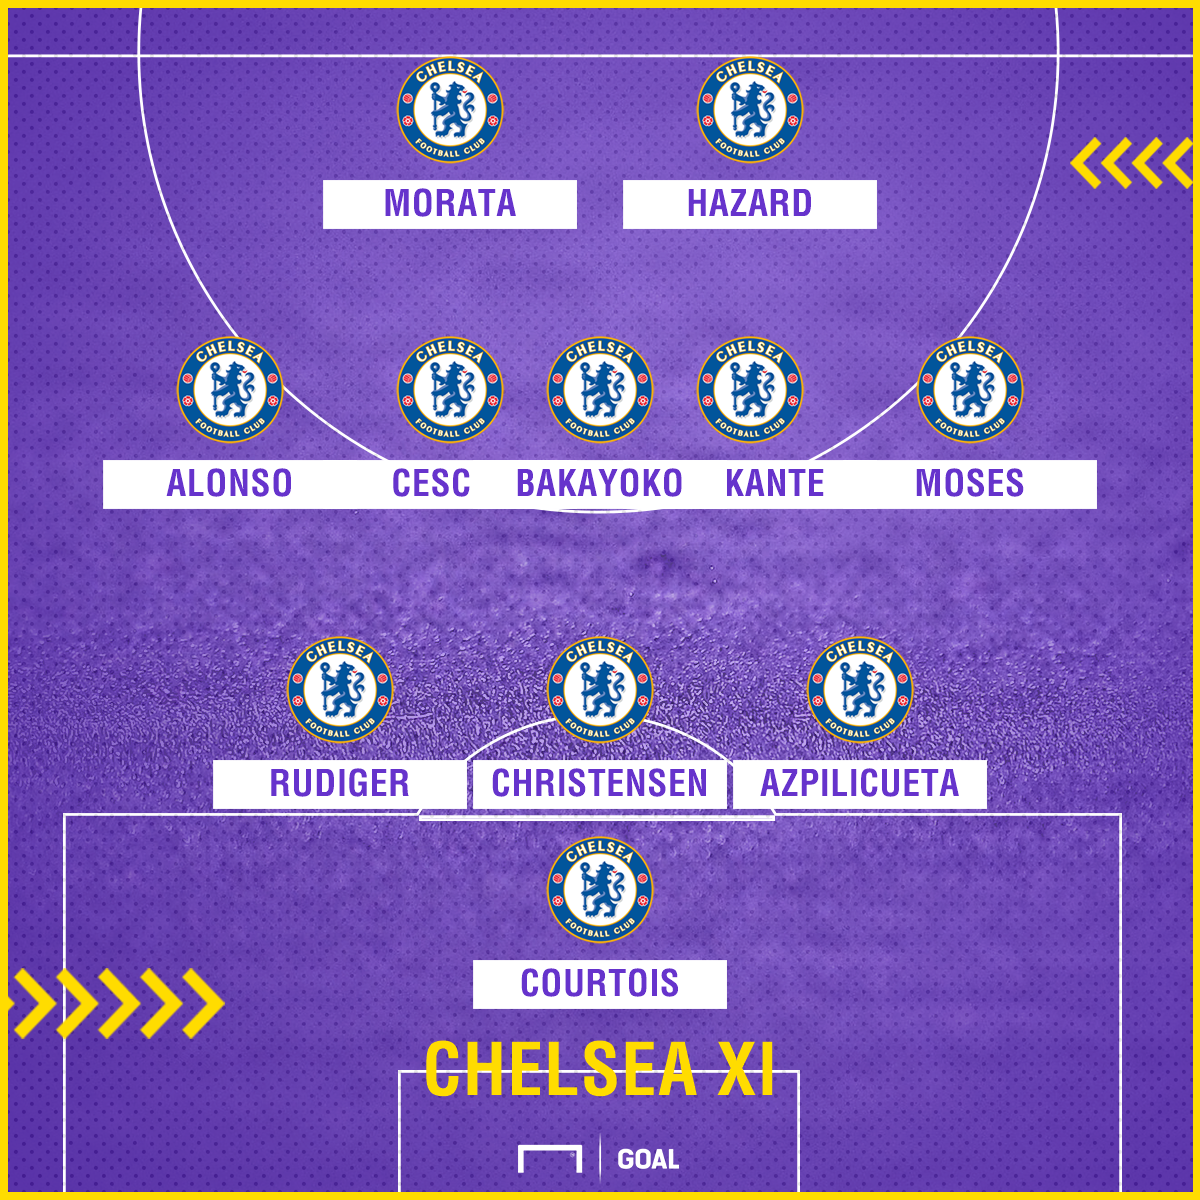 Chelsea XI predicted for Arsenal